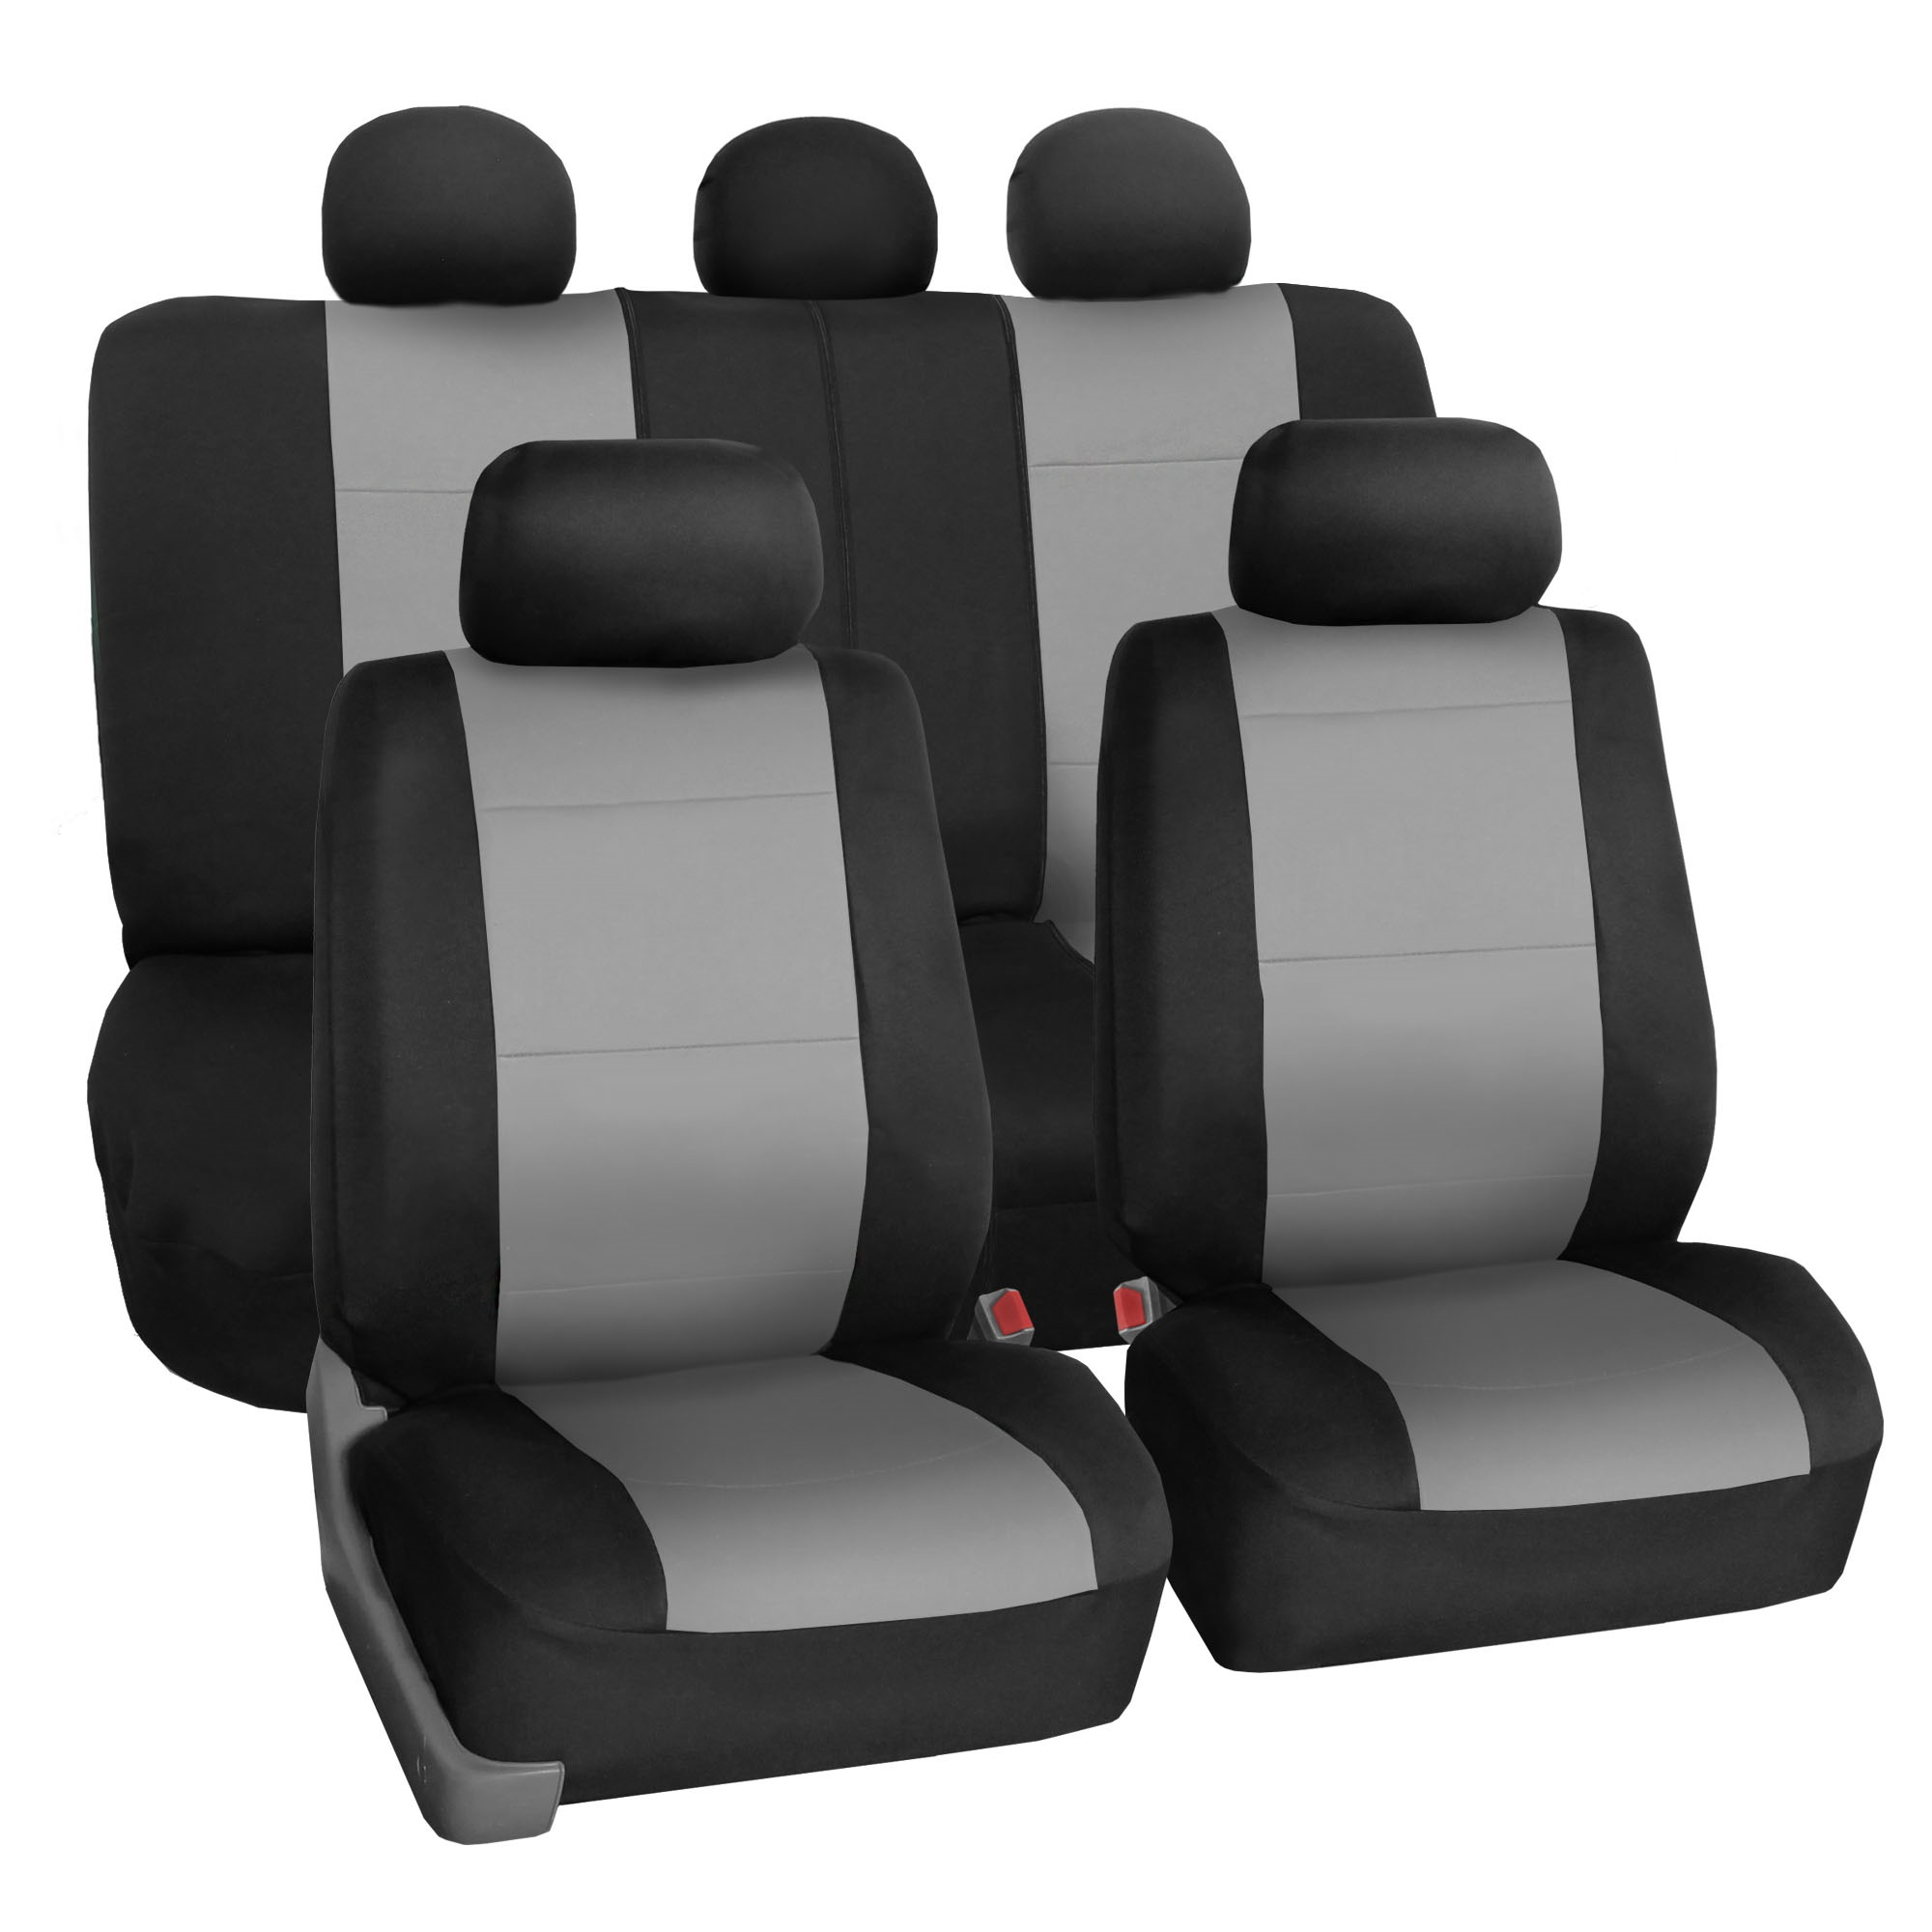 FH Group Neoprene Waterproof Full Set Car Seat Covers Airbag Ready & Split Bench Function, Gray